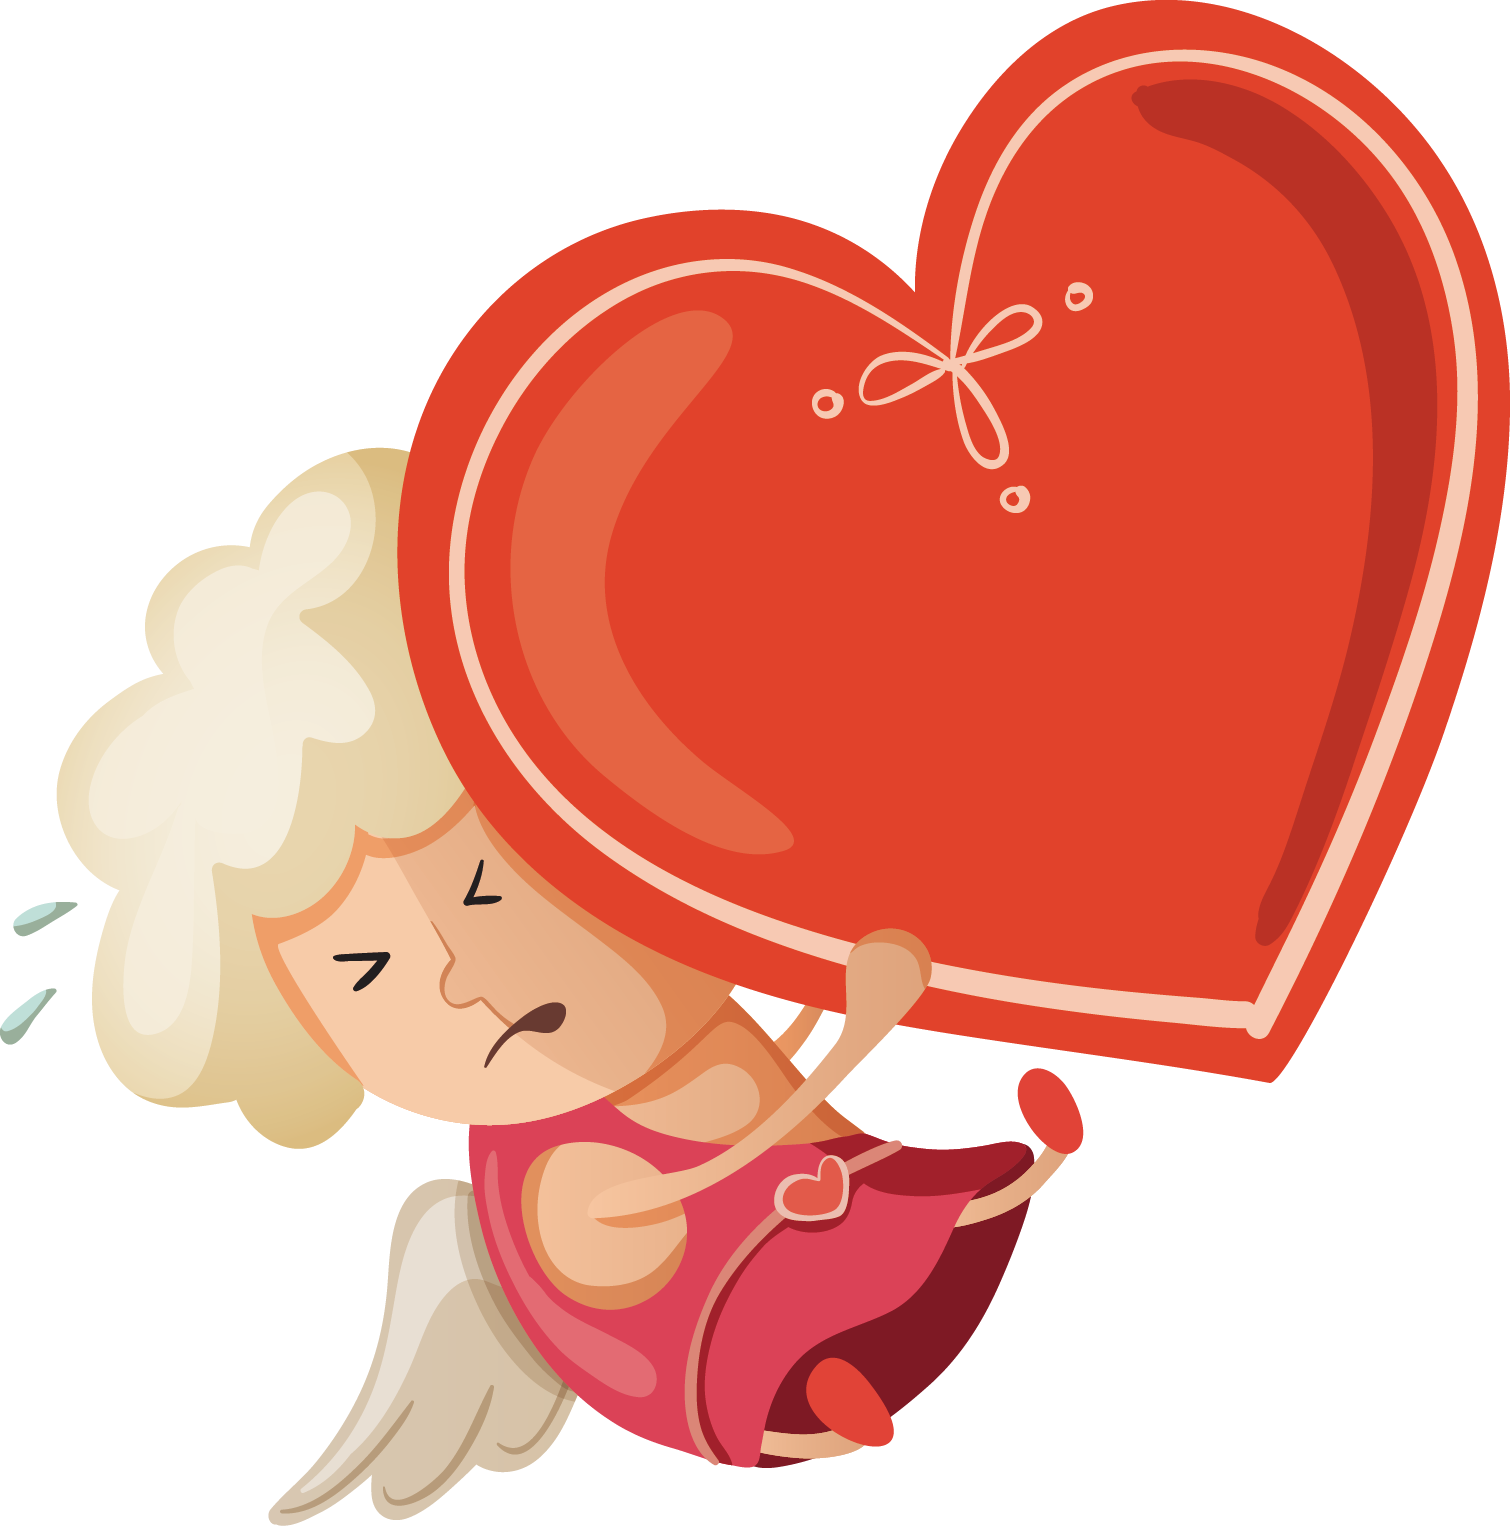 clipart freeuse download Cupid angel love transprent. Hart drawing cartoon